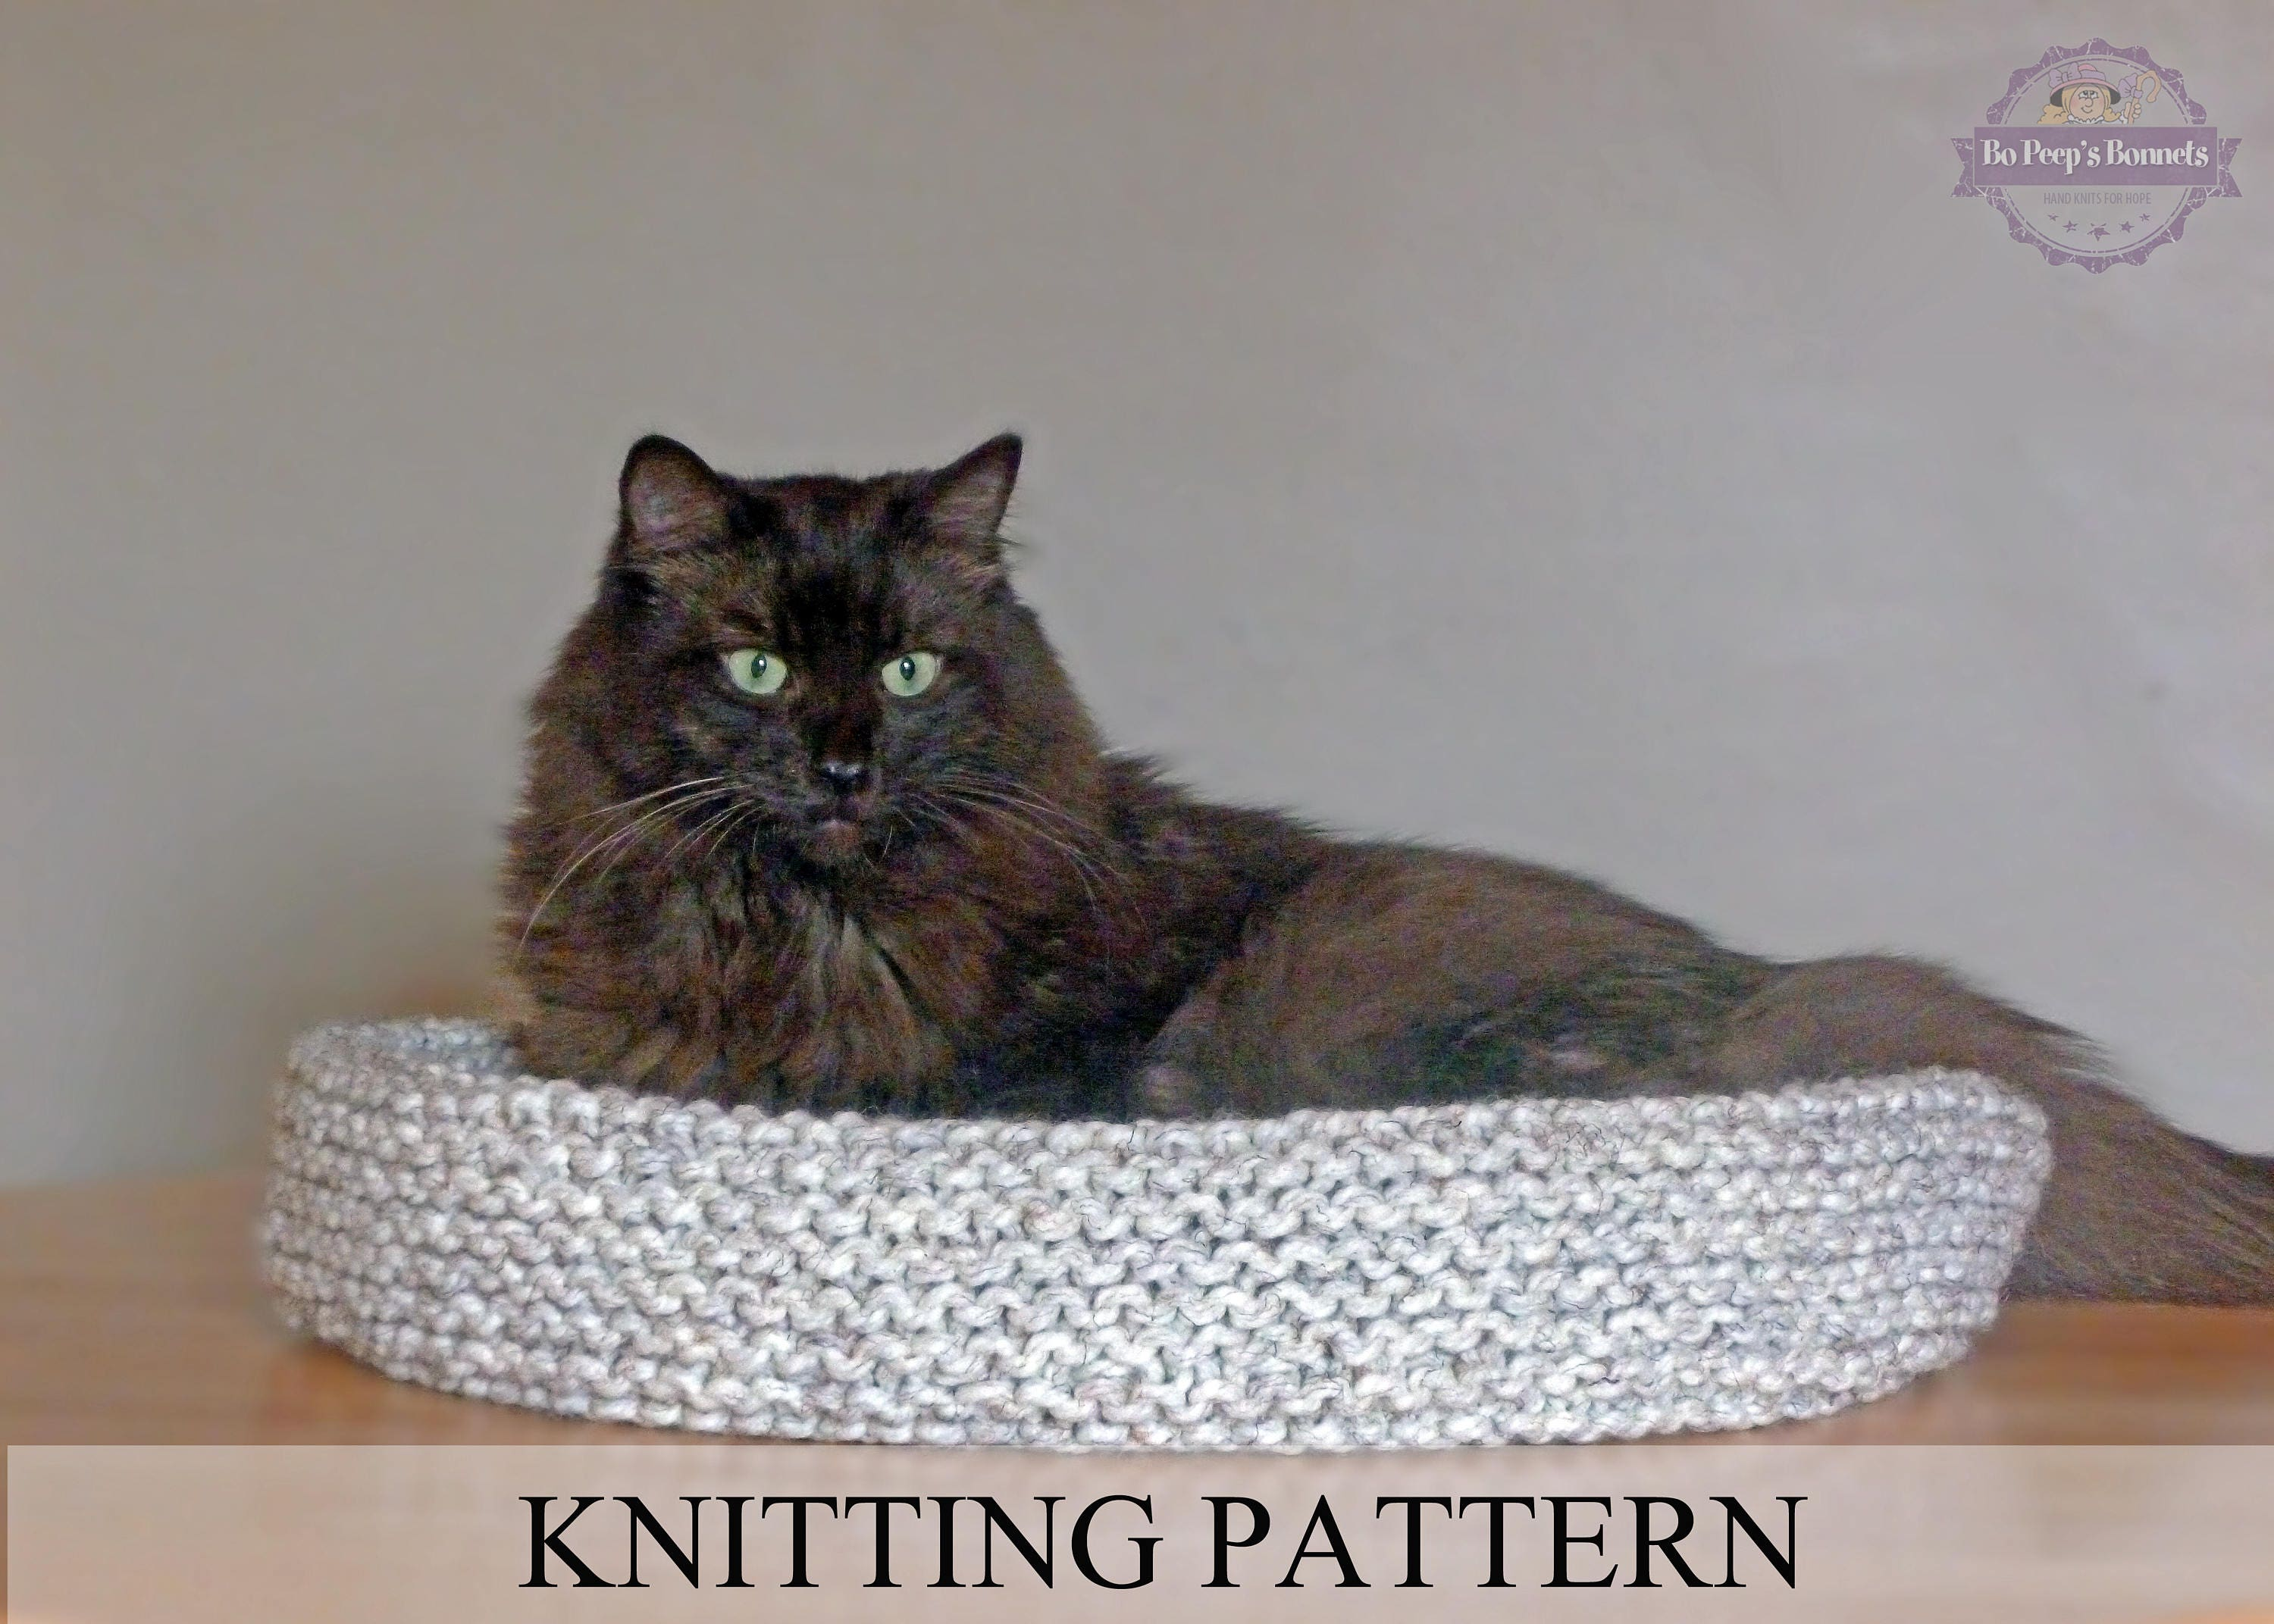 Cat bed knitting pattern knitted cat bed tutorial diy cat zoom jeuxipadfo Gallery